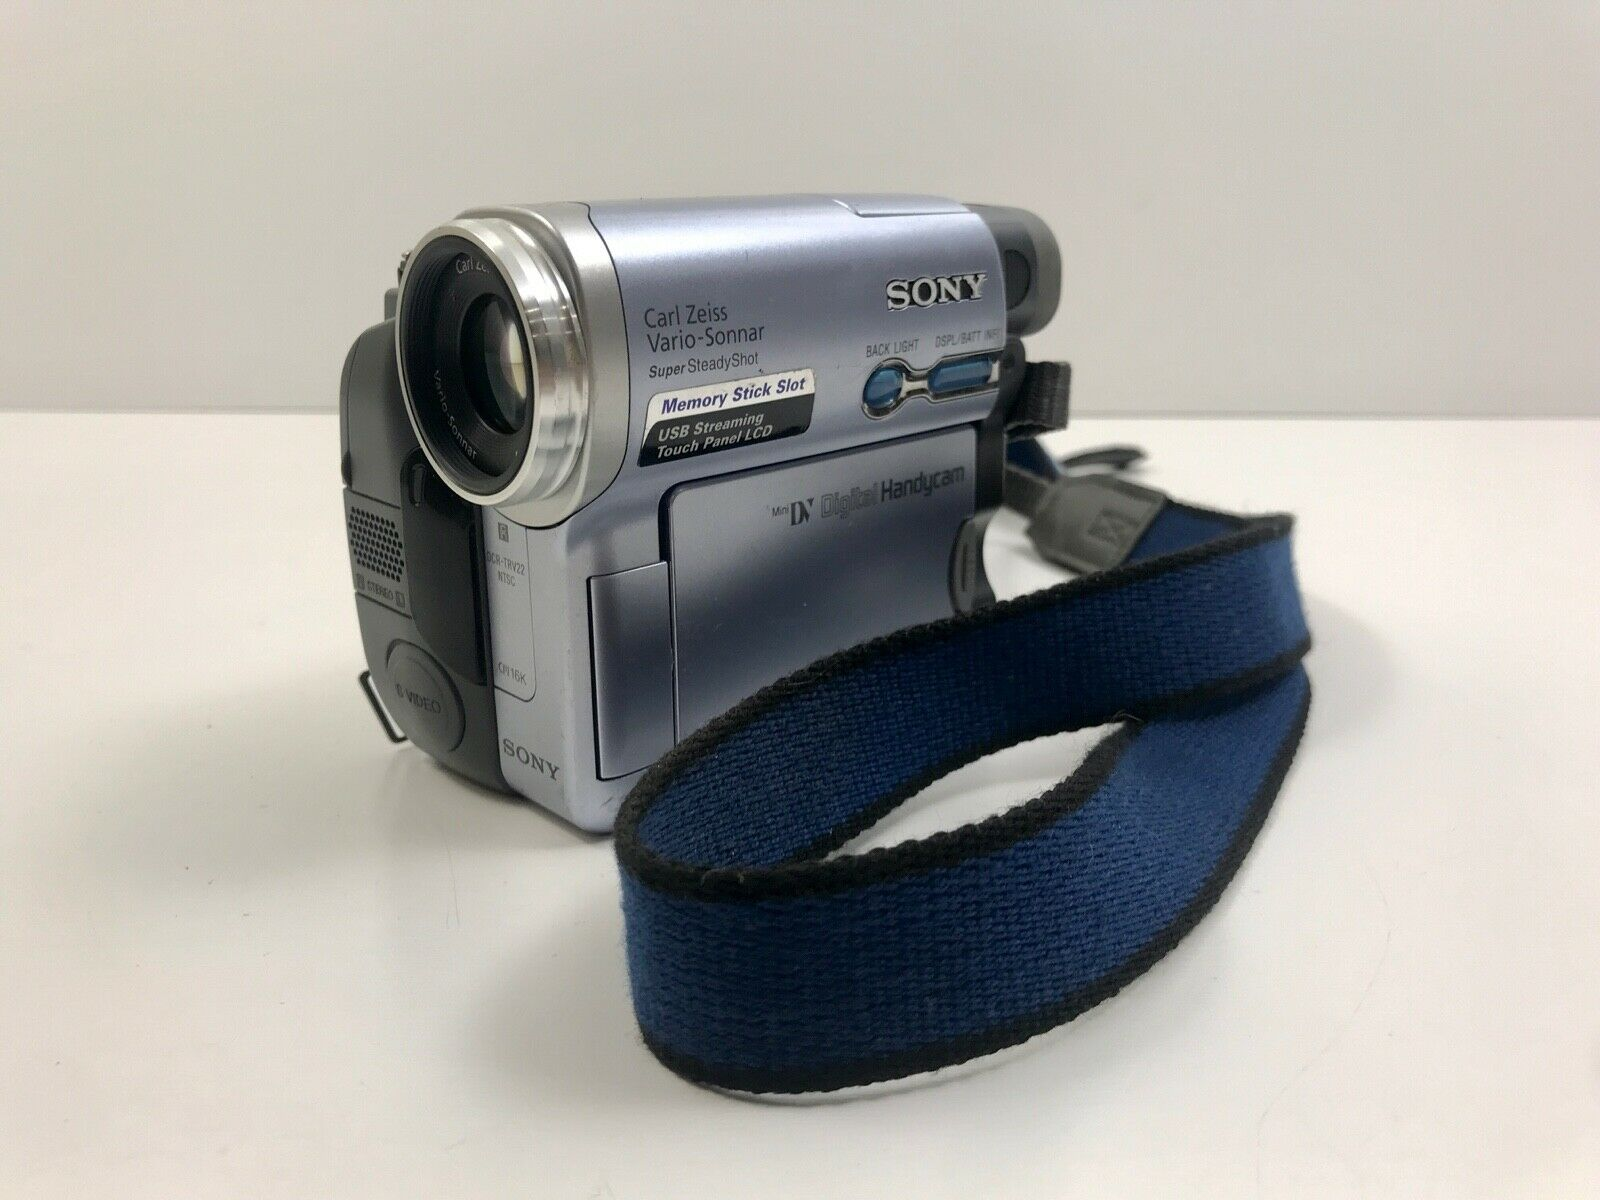 Sony DCR-TRV22 Mini Camcorder Untested Selling As Parts Repair No Battery - $49.95